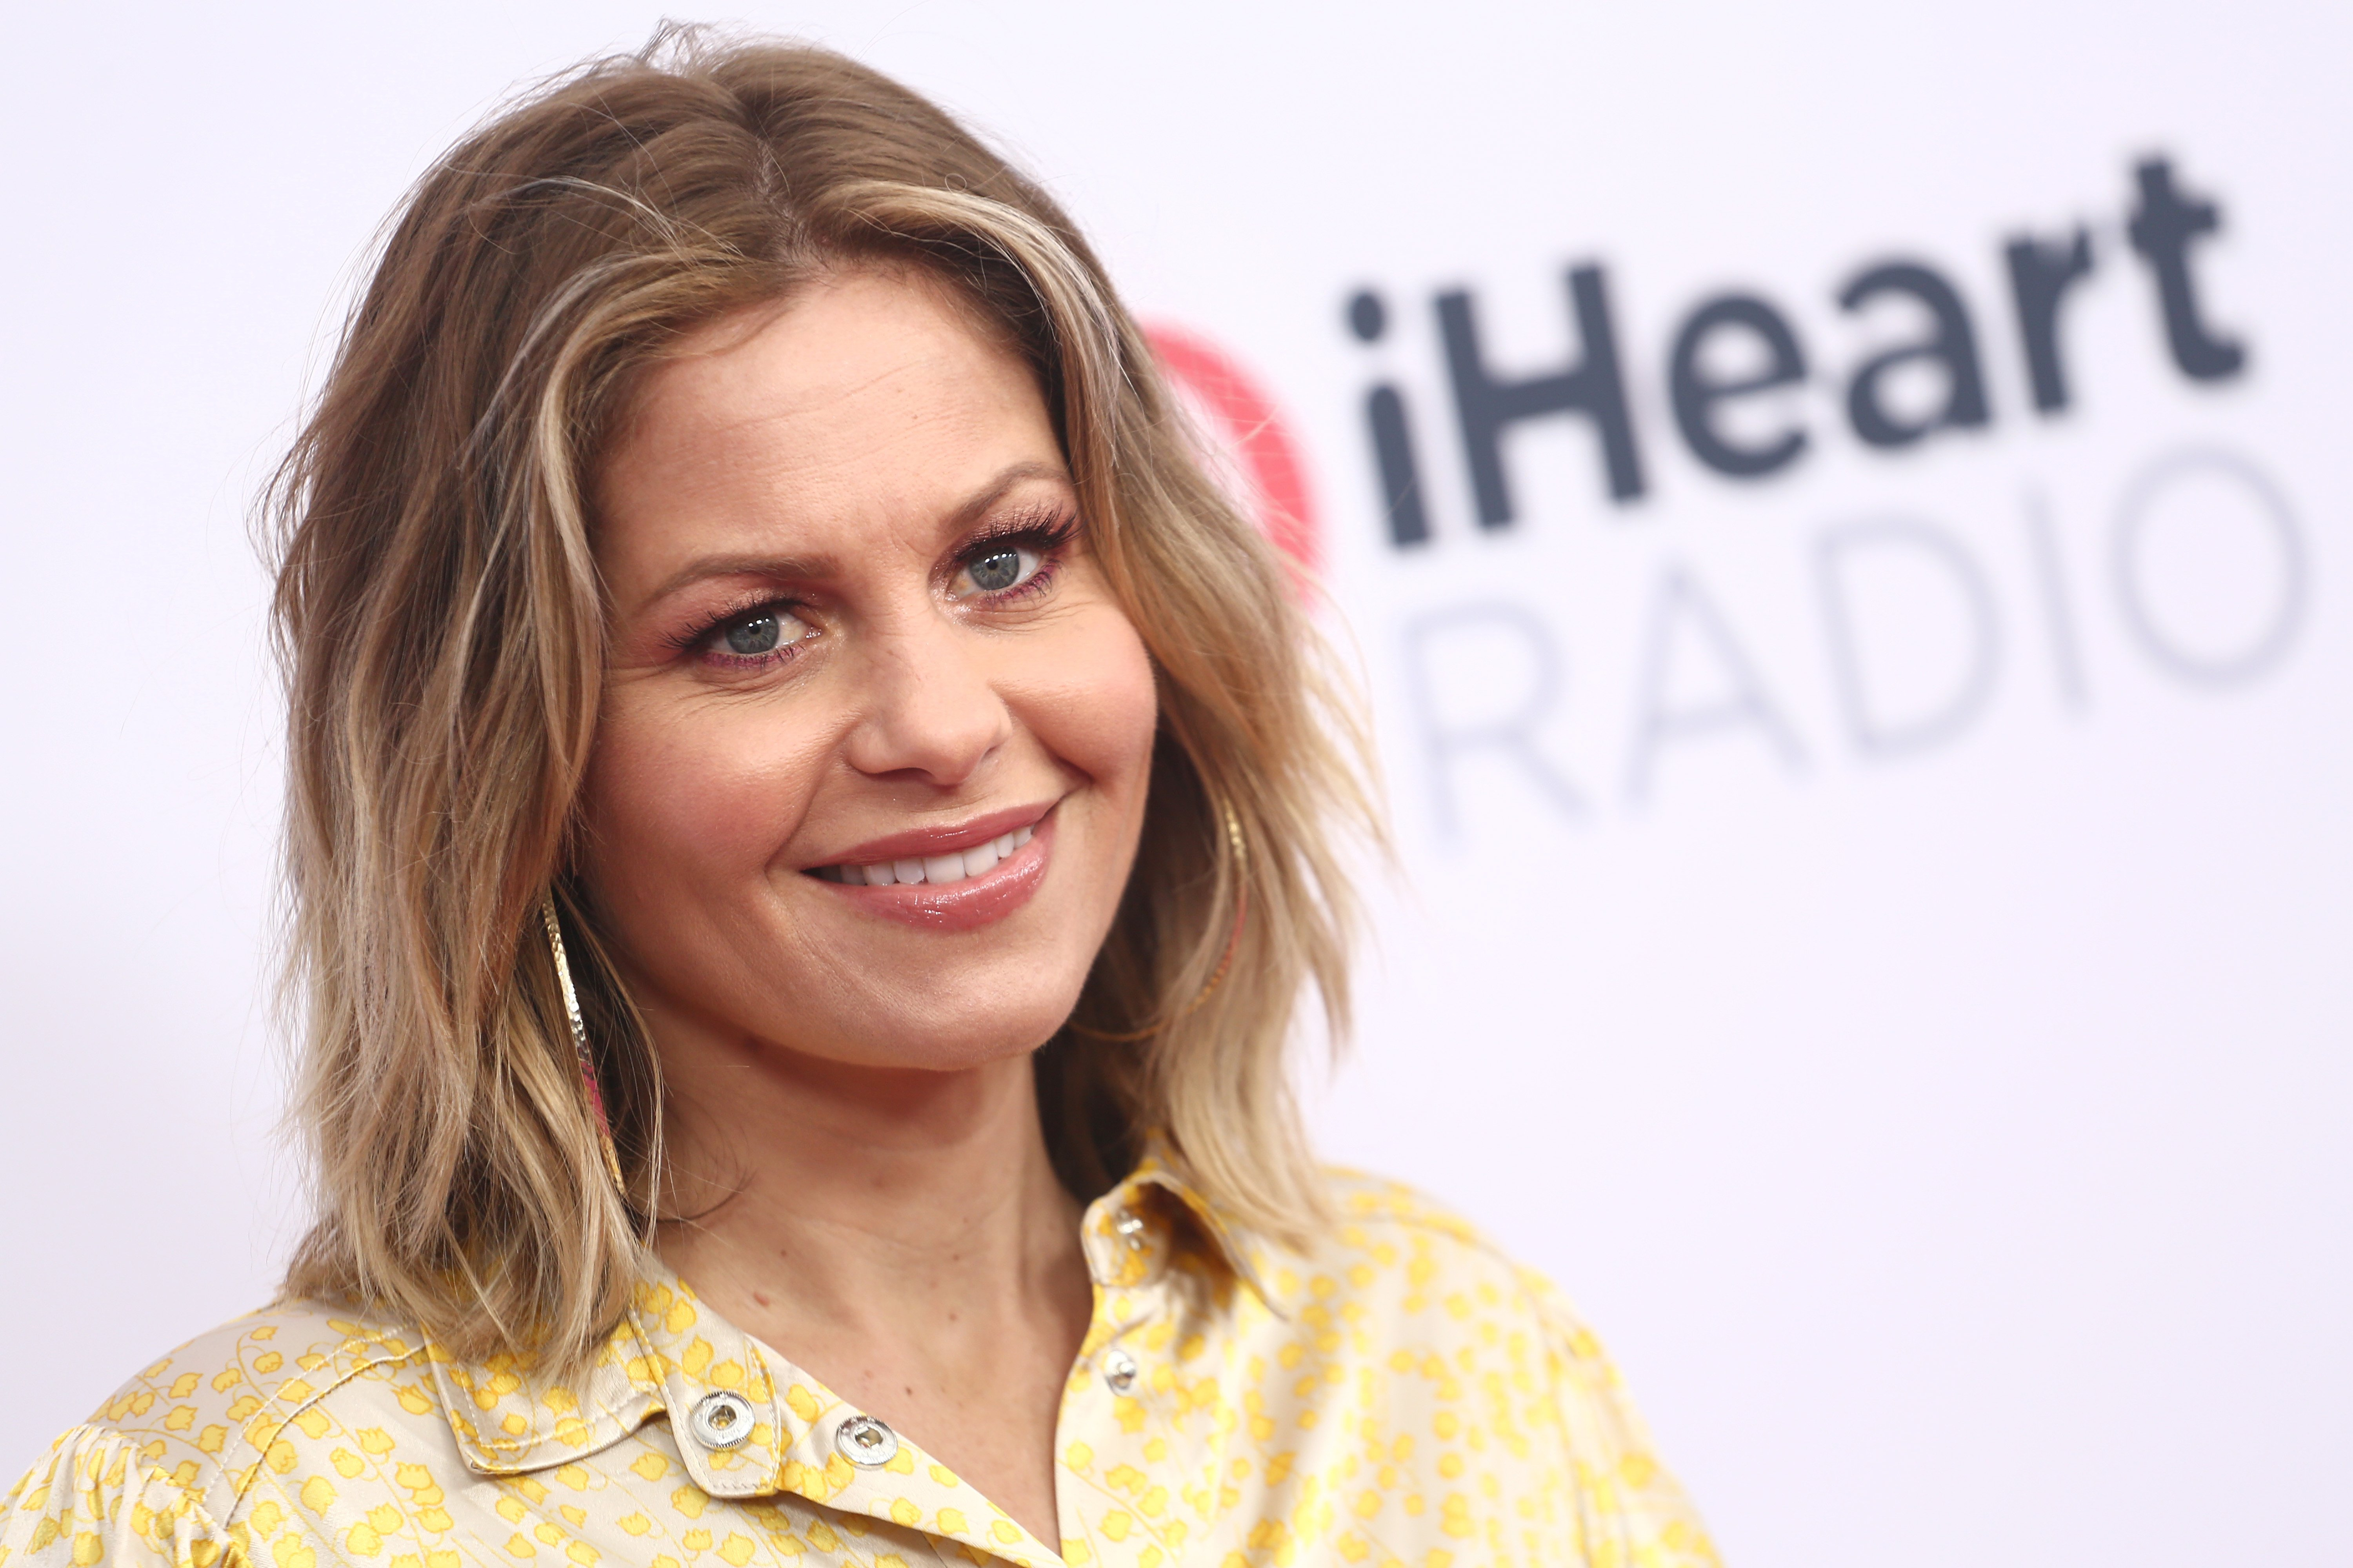 Candace Cameron Bure on June 01, 2019 in Carson, California | Source: Getty Images/Global Images Ukraine